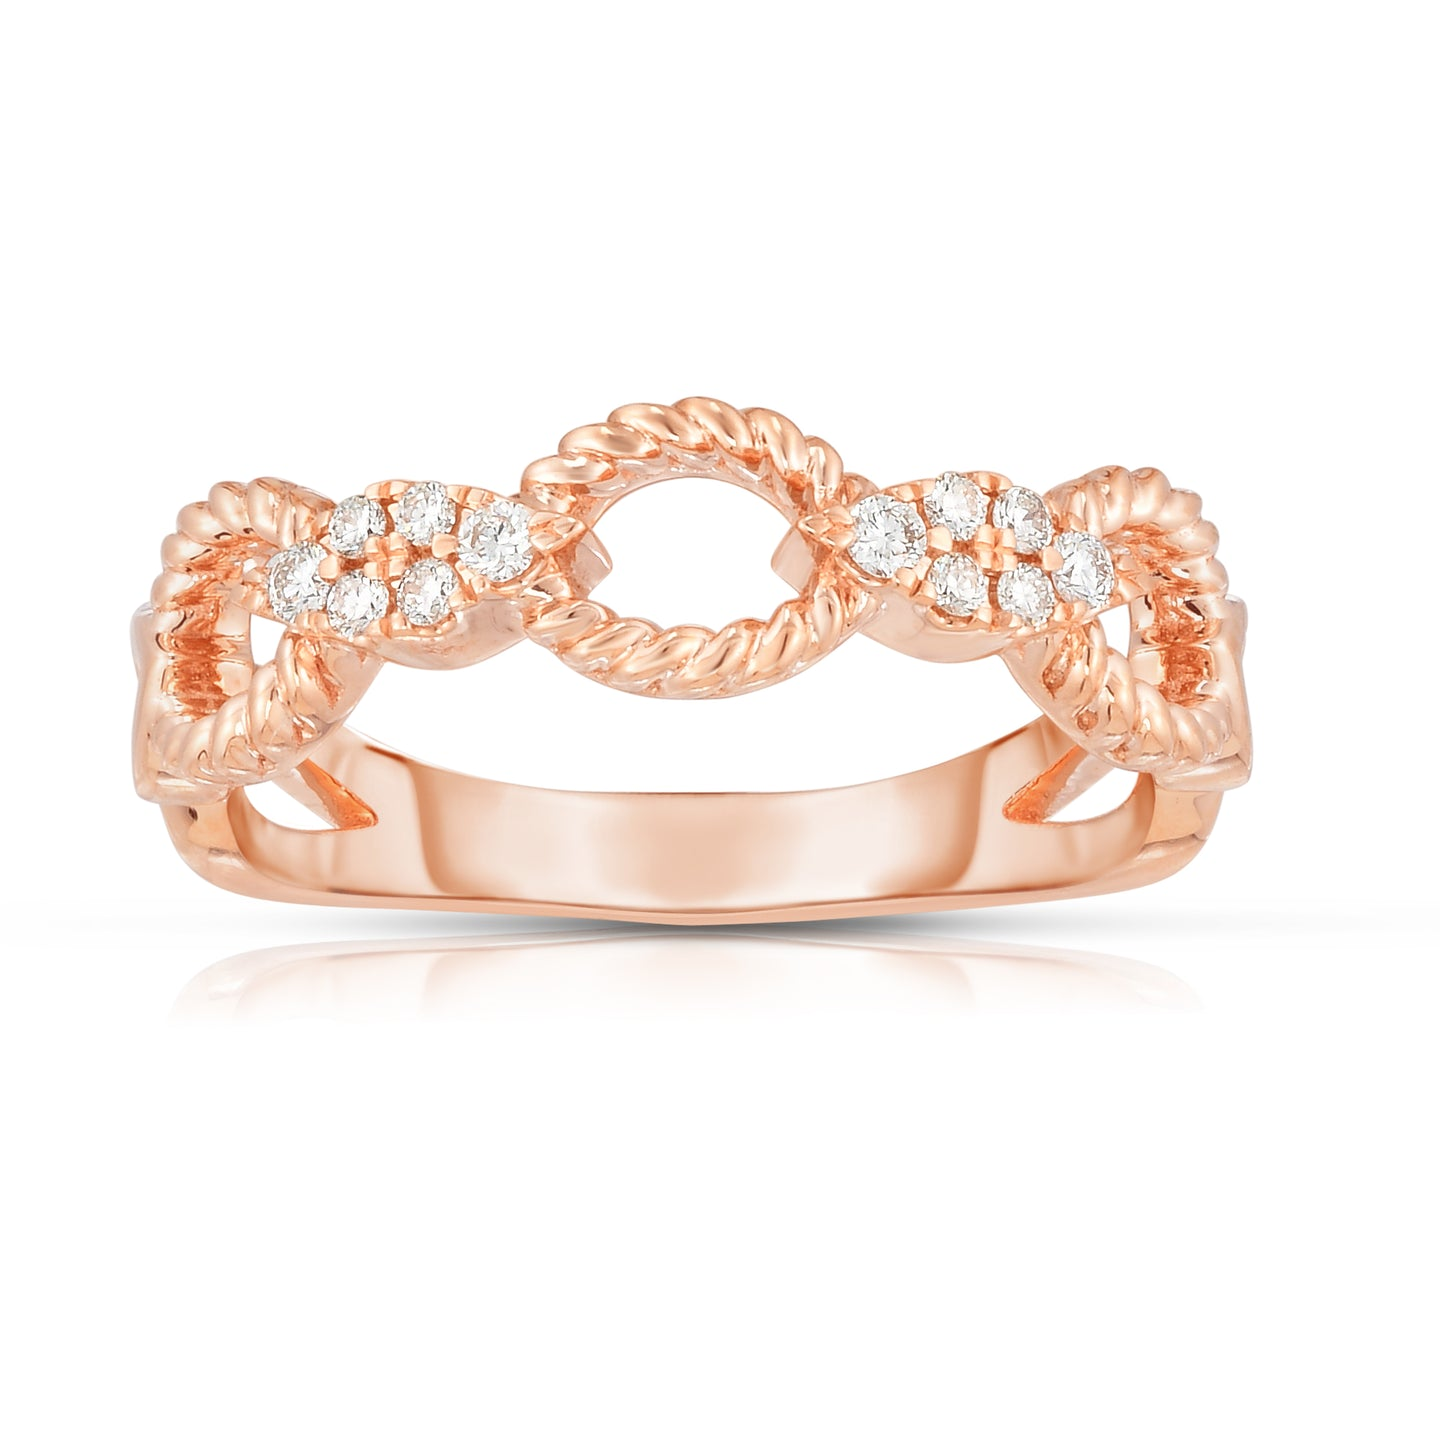 Sabel Collection 14K Rose Gold Diamond Twist Ring